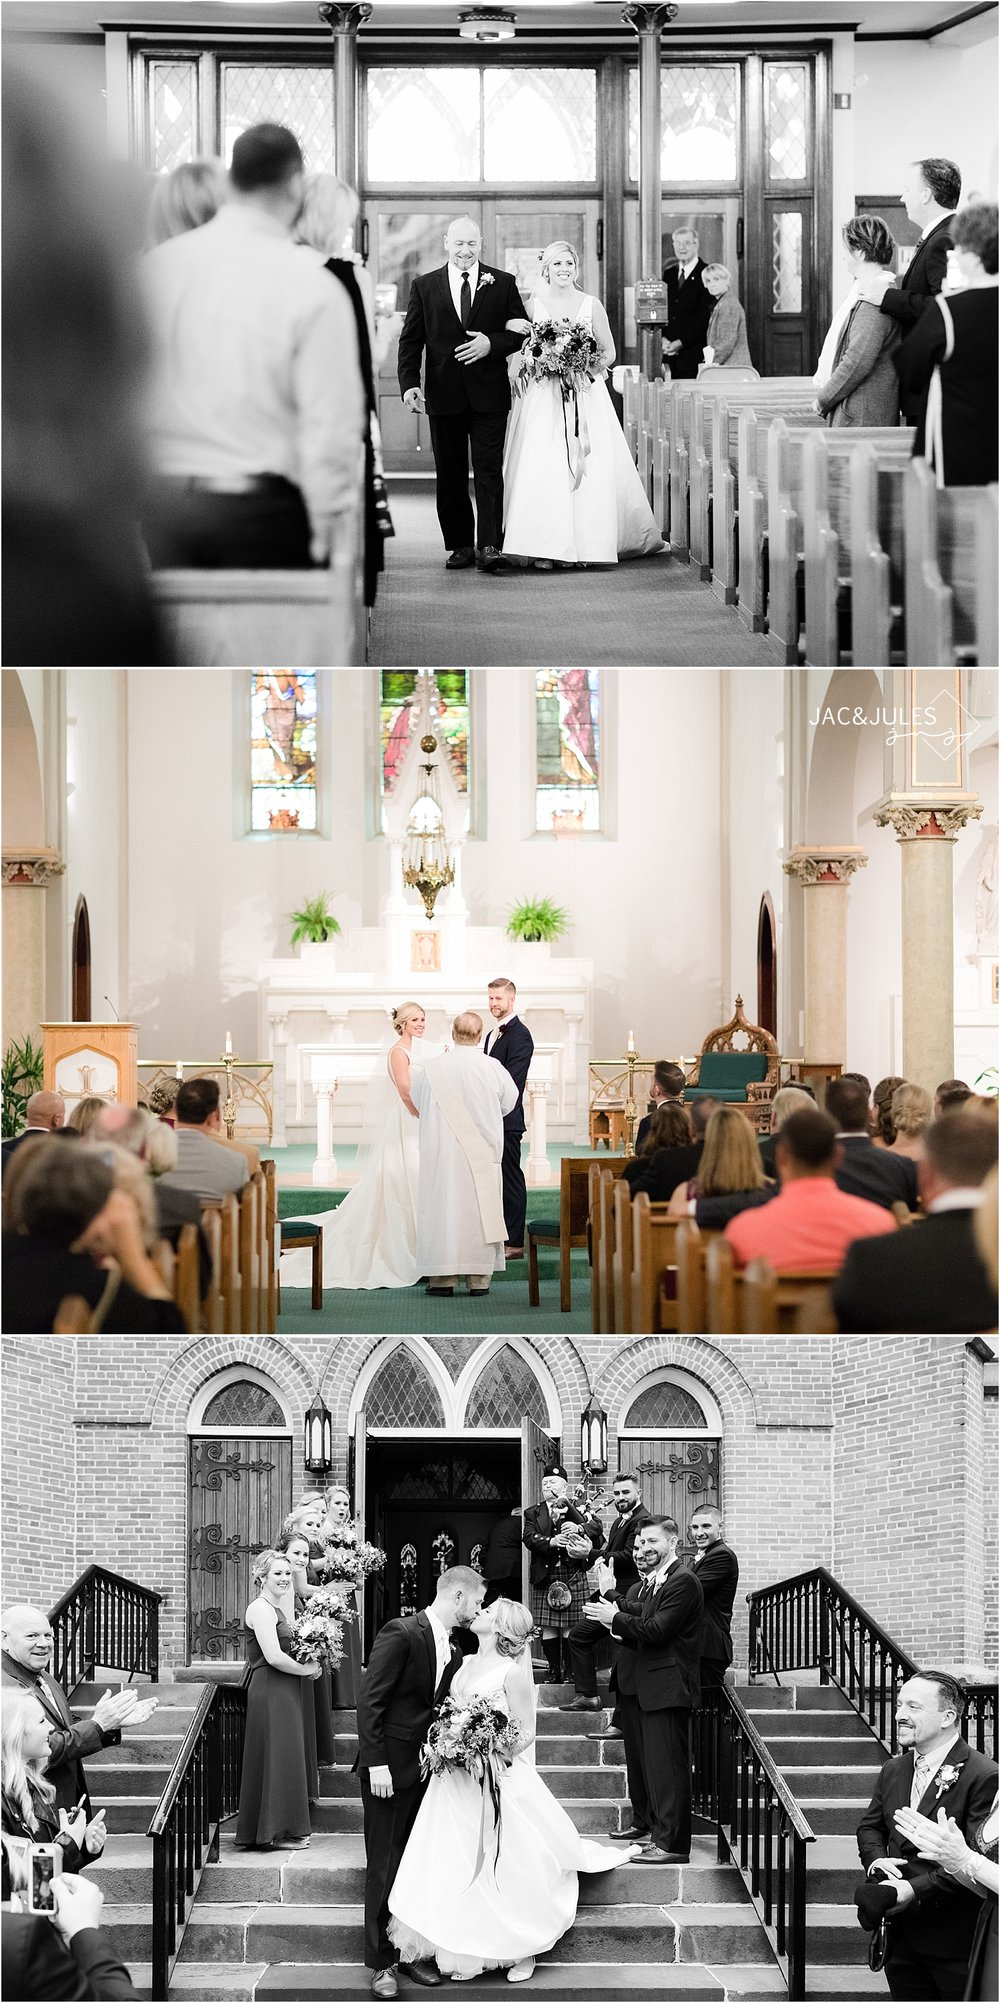 wedding ceremony at a church in upstate NY